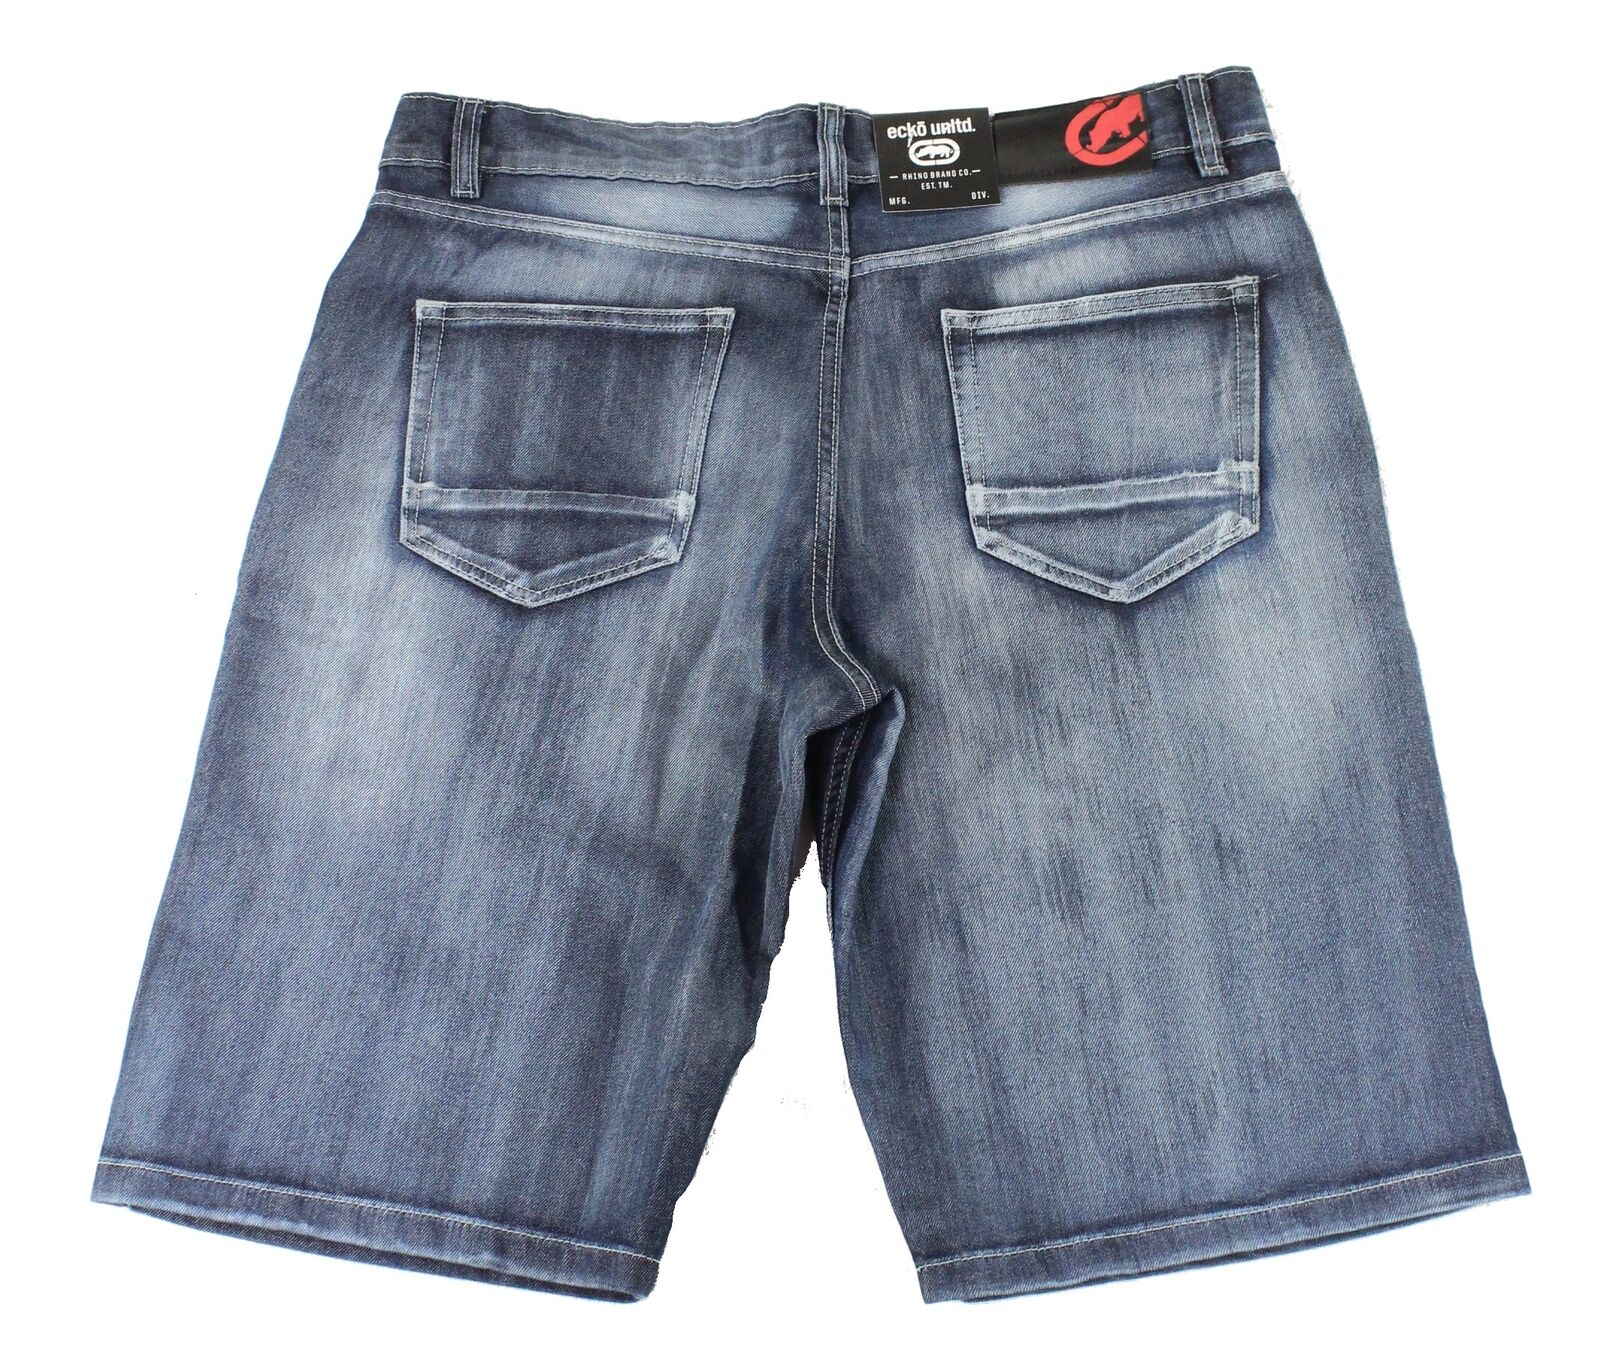 New-Ecko-Unltd-Mens-Shorts-Blue-Size-38-Denim-759-Relaxed-Fit-Washed-48-193 thumbnail 2